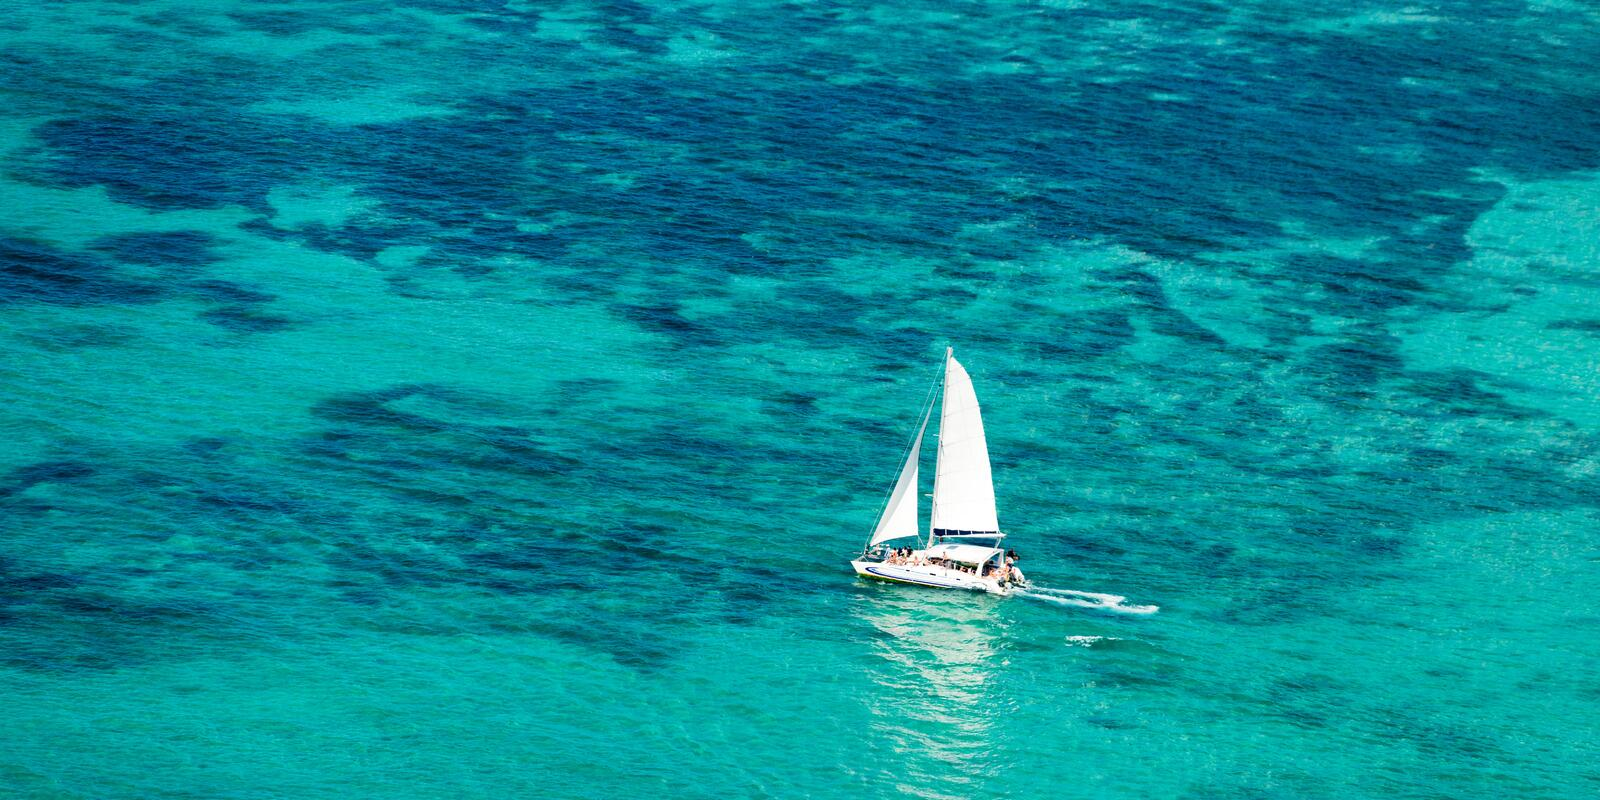 8-day cruise on a catamaran with hostess on board in Mauritius - all inclusive